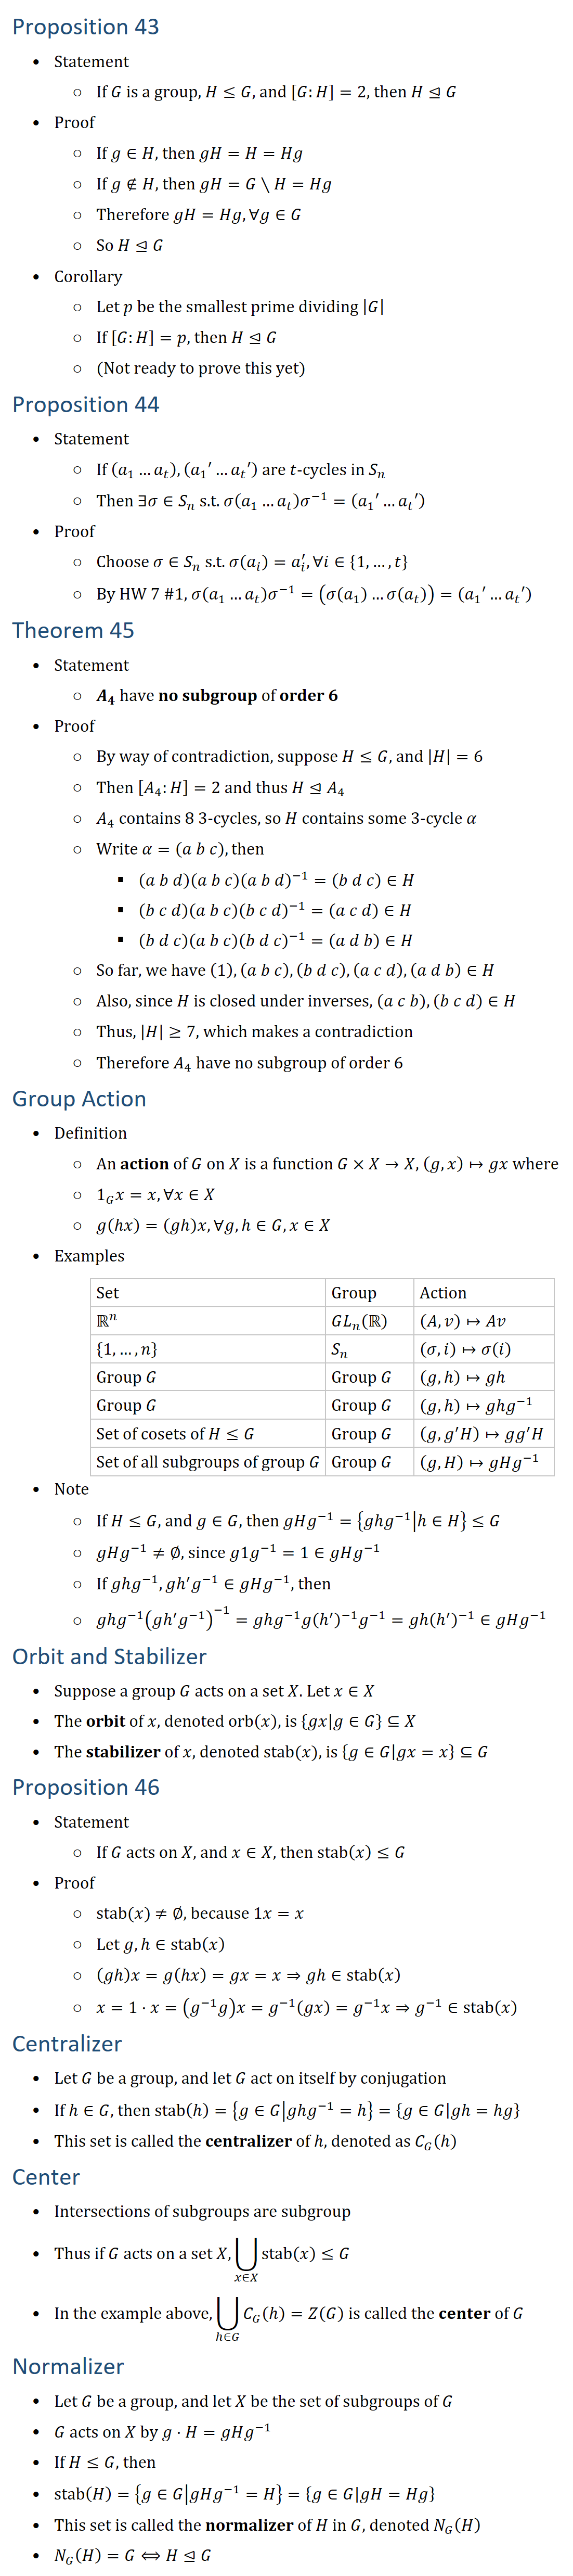 Proposition 43 • Statement ○ If G is a group, H≤G, and [G:H]=2, then H⊴G • Proof ○ If g∈H, then gH=H=Hg ○ If g∉H, then gH=G∖H=Hg ○ Therefore gH=Hg,∀g∈G ○ So H⊴G • Corollary ○ Let p be the smallest prime dividing |G| ○ If [G:H]=p, then H⊴G ○ (Not ready to prove this yet) Proposition 44 • Statement ○ If (a_1…a_t ),(a_1′…a_t′) are t-cycles in S_n ○ Then ∃σ∈S_n s.t. σ(a_1…a_t ) σ^(−1)=(a_1′…a_t′) • Proof ○ Choose σ∈S_n s.t. σ(a_i )=a_i^′, ∀i∈{1,…,t} ○ By HW 7 #1, σ(a_1…a_t ) σ^(−1)=(σ(a_1 )…σ(a_t ))=(a_1′…a_t′) Theorem 45 • Statement ○ A_4 have no subgroup of order 6 • Proof ○ By way of contradiction, suppose H≤G, and |H|=6 ○ Then [A_4:H]=2 and thus H⊴A_4 ○ A_4 contains 8 3-cycles, so H contains some 3-cycle α ○ Write α=(a b c), then § (a b d)(a b c) (a b d)^(−1)=(b d c)∈H § (b c d)(a b c) (b c d)^(−1)=(a c d)∈H § (b d c)(a b c) (b d c)^(−1)=(a d b)∈H ○ So far, we have (1), (a b c),(b d c),(a c d),(a d b)∈H ○ Also, since H is closed under inverses, (a c b),(b c d)∈H ○ Thus, |H|≥7, which makes a contradiction ○ Therefore A_4 have no subgroup of order 6 Group Action • Definition ○ An action of G on X is a function G×X→X, (g,x)↦gx where ○ 1_G x=x, ∀x∈X ○ g(h�)=(ghx,∀g,h∈G,x∈X • Examples Set Group Action Rn GL_n (R (A,v)↦Av {1,…,n} S_n (σ,i)↦σ(i) Group G Group G (g,h↦gh Group G Group G (g,h↦ghg^(−1) Set of cosets of H≤G Group G (g,g^′ H)↦gg^′ H Set of all subgroups of group G Group G (g,H)↦gHg^(−1) • Note ○ If H≤G, and g∈G, then gHg^(−1)={gh�^(−1)│hH}≤G ○ gHg^(−1)≠∅, since g1g^(−1)=1∈gHg^(−1) ○ If ghg^(−1),gh′ g^(−1)∈gHg^(−1), then ○ ghg^(−1) (gh′ g^(−1) )^(−1)=ghg^(−1) g(h′ )^(−1) g^(−1)=gh(h′ )^(−1)∈gHg^(−1) Orbit and Stabilizer • Suppose a group G acts on a set X. Let x∈X • The orbit of x, denoted orb(x), is {gx│g∈G}⊆X • The stabilizer of x, denoted stab(x), is {g∈G│gx=x}⊆G Proposition 46 • Statement ○ If G acts on X, and x∈X, then stab(x)≤G • Proof ○ stab(x) ≠∅, because 1x=x ○ Let g,h∈stab(x) ○ (ghx=g(h�)=gx=x⇒gh∈stab(x) ○ x=1⋅x=(g^(−1) g)x=g^(−1) (gx)=g^(−1) x⇒g^(−1)∈stab(x) Centralizer • Let G be a group, and let G act on itself by conjugation • If h∈G, then stab(h={g∈G│gh�^(−1)=h={g∈G│ghh�} • This set is called the centralizer of h, denoted as C_G (h Center • Intersections of subgroups are subgroup • Thus if G acts on a set X, ⋃8_(x∈X)▒stab(x) ≤G • In the example above, ⋃8_(hG)▒〖C_G (h 〗=Z(G) is called the center of G Normalizer • Let G be a group, and let X be the set of subgroups of G • G acts on X by g⋅H=gHg^(−1) • If H≤G, then • stab(H)={g∈G│gHg^(−1)=H}={g∈G│gH=Hg} • This set is called the normalizer of H in G, denoted N_G (H) • N_G (H)=G⟺H⊴G